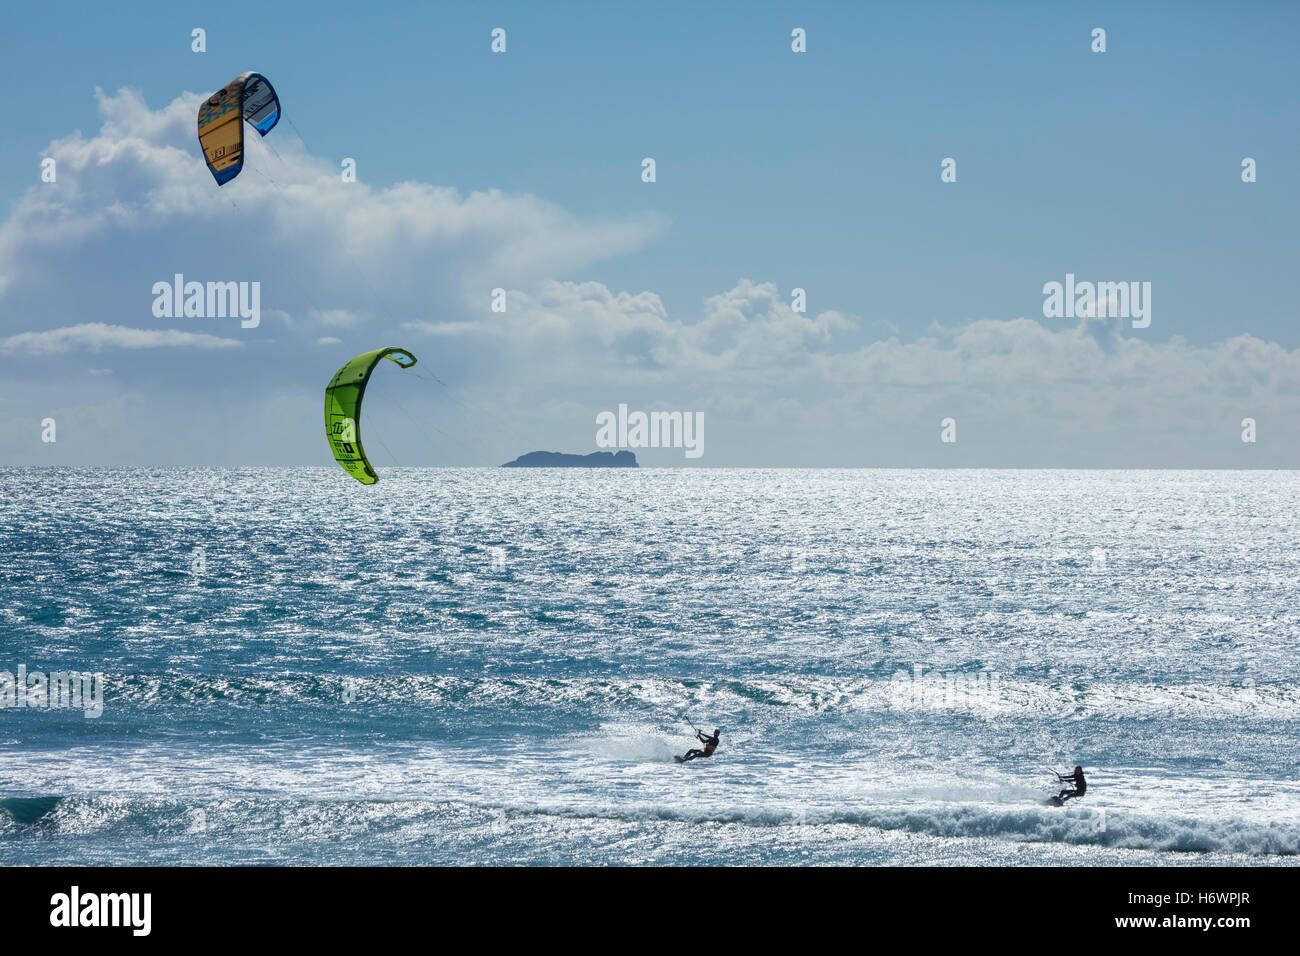 Francois Colussi and Sophie Mathews kitesurfing off Keel beach, Achill Island, County Mayo, Ireland. - Stock Image